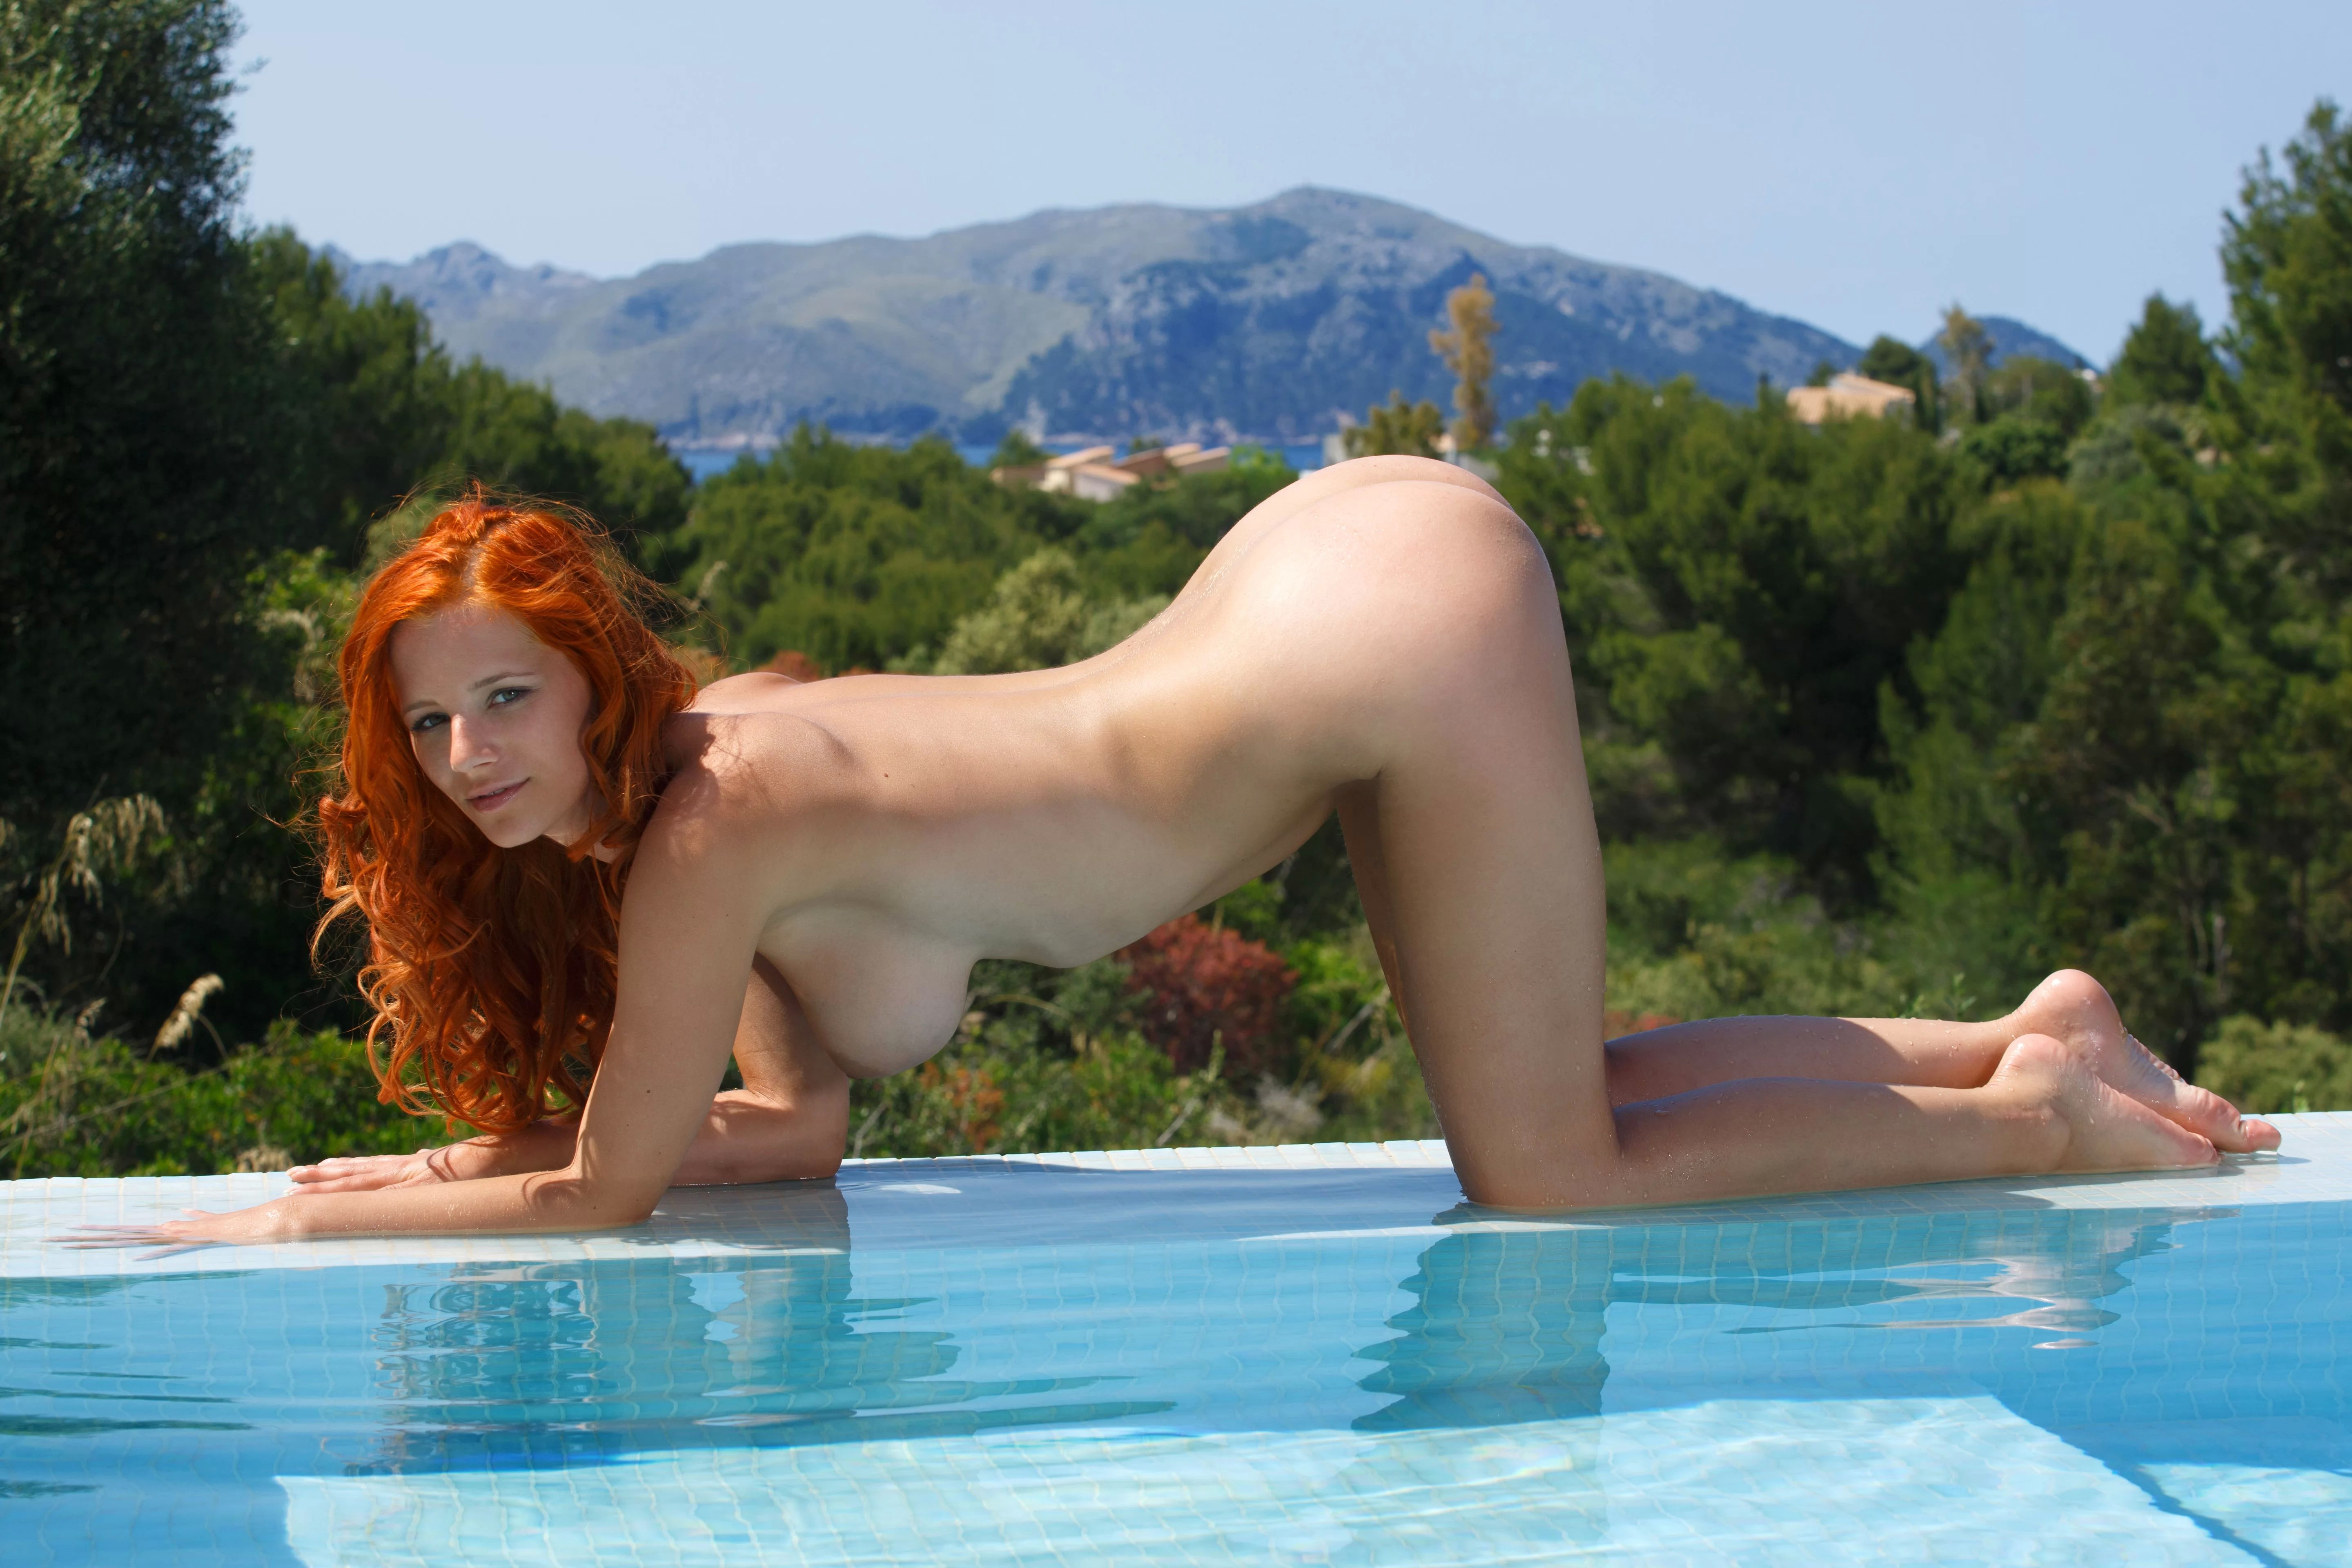 girls-nude-in-pool-wet-photo-mix-vol6-42